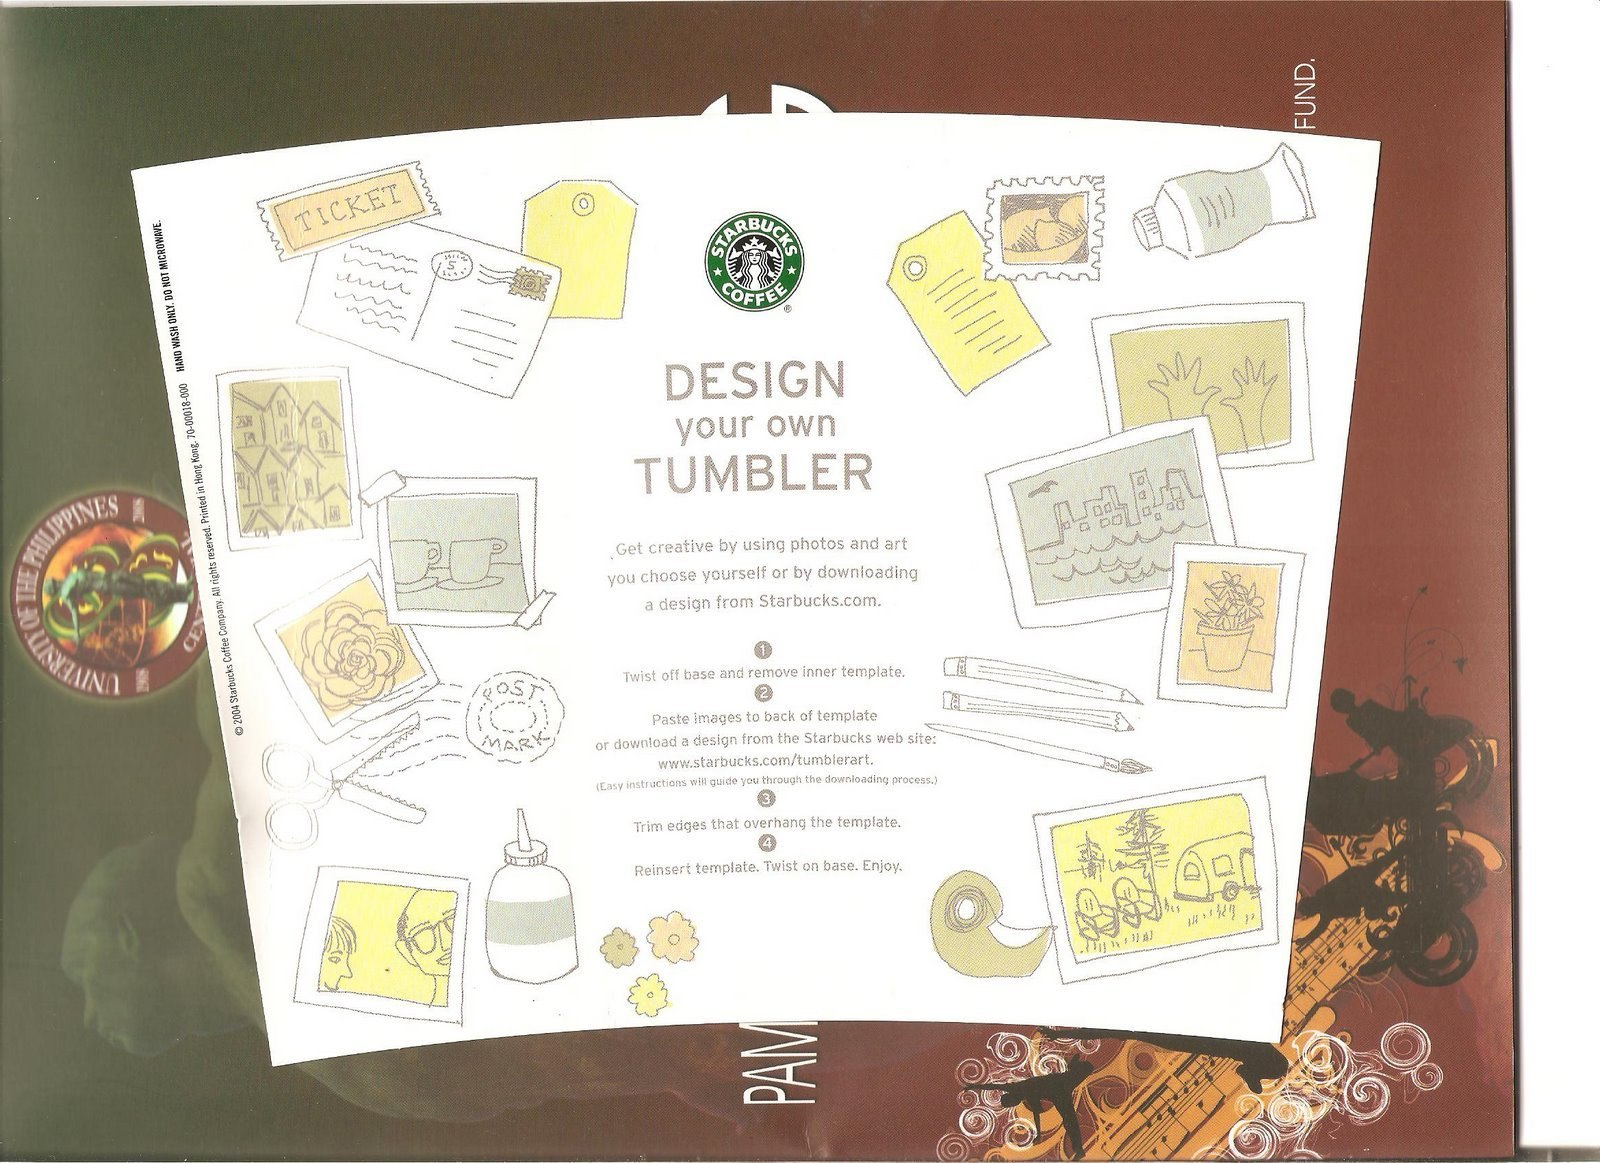 Starbucks Tumbler Template Create Your Own Blank Ridz Sg Tumbler In Starbucks Create Your Own Tumbler Blank Template